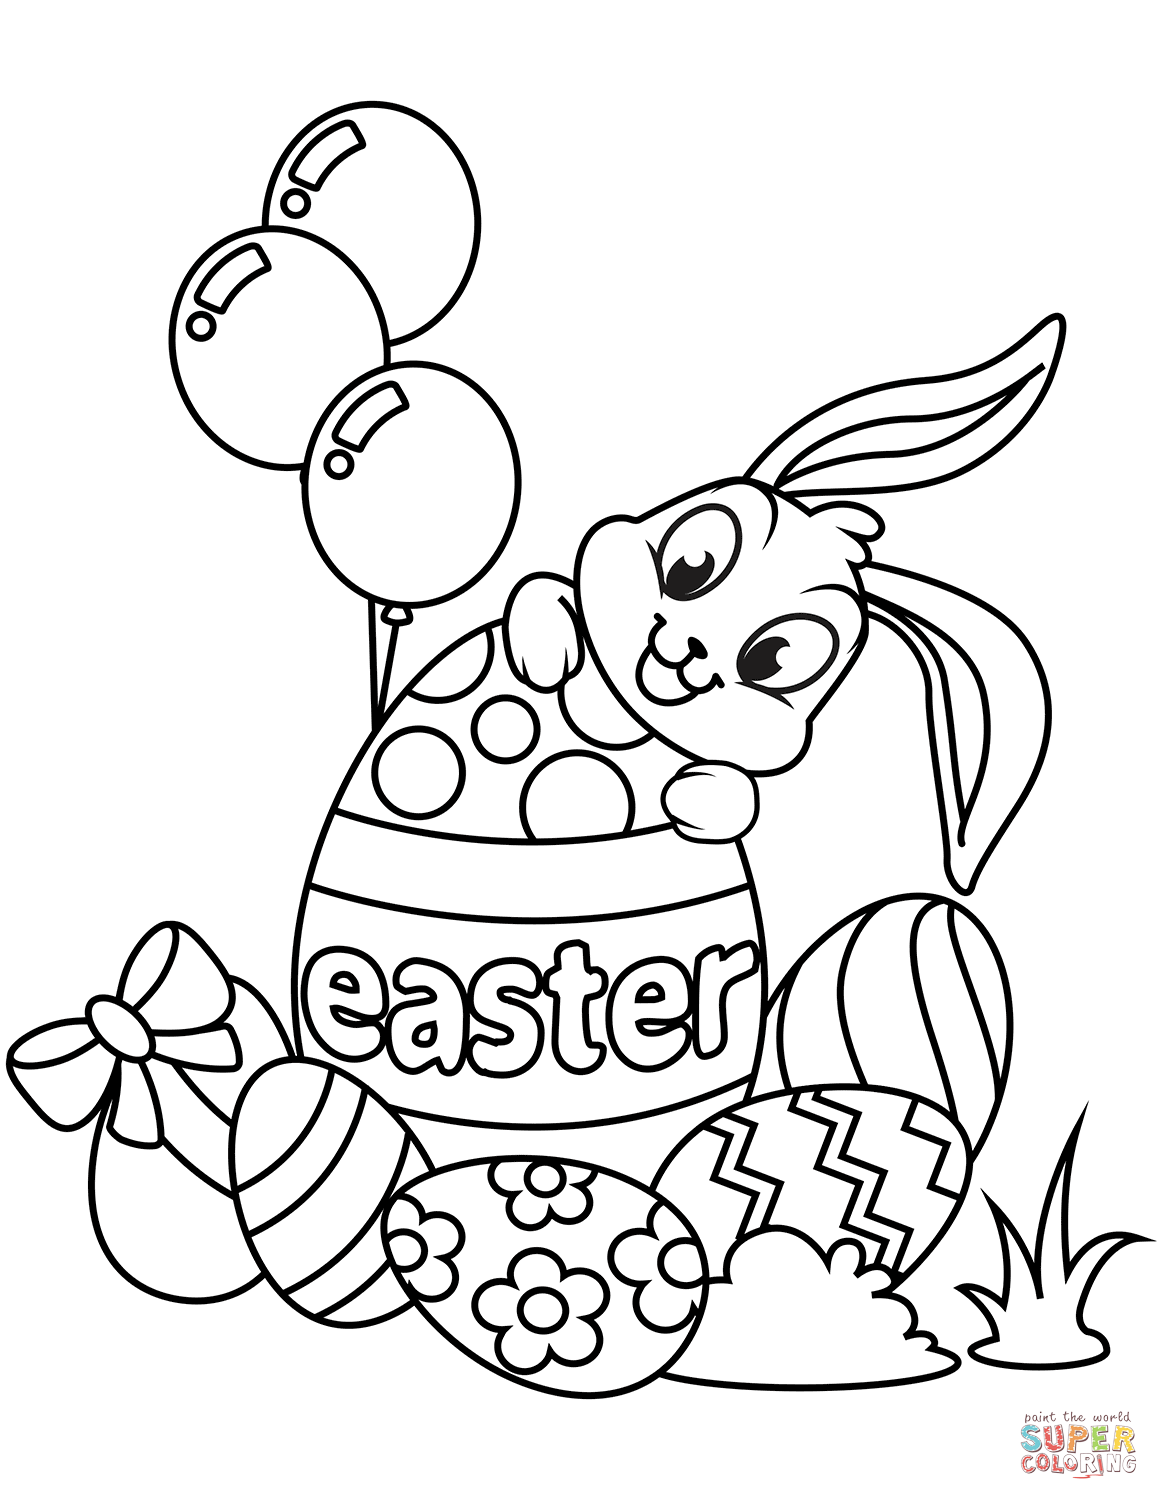 Coloring Pages Of Easter Eggs And Bunnies At Getdrawings